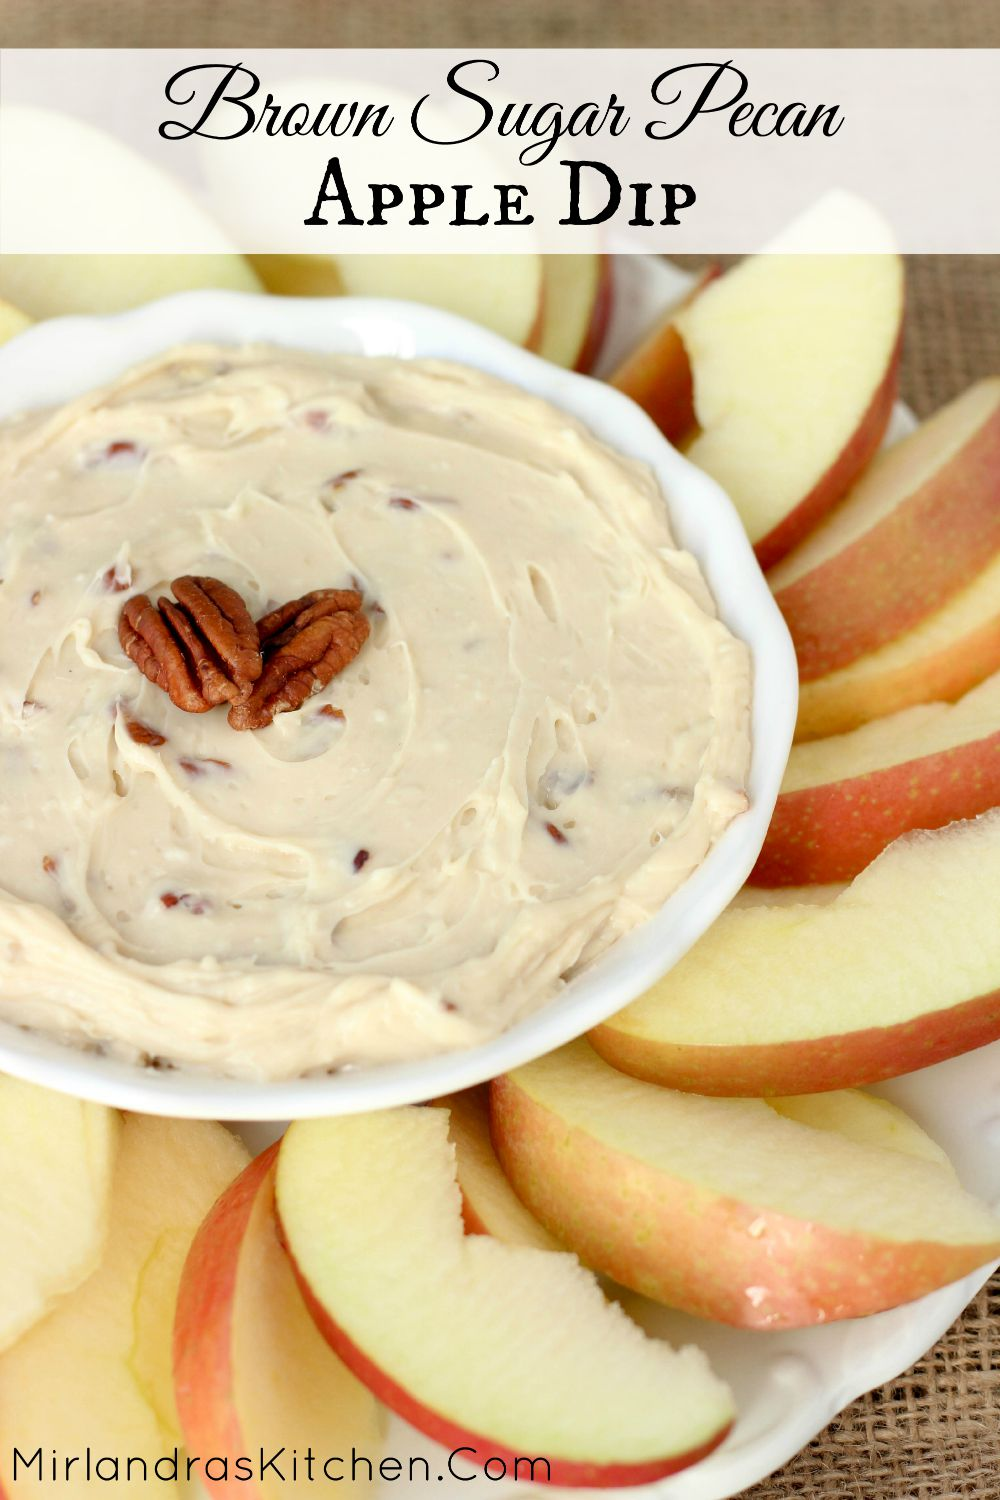 Brown Sugar Pecan Apple Dip is creamy with a sweet brown sugar flavor and crunchy pecans! It makes wonderful party food and is also great in sack lunches!